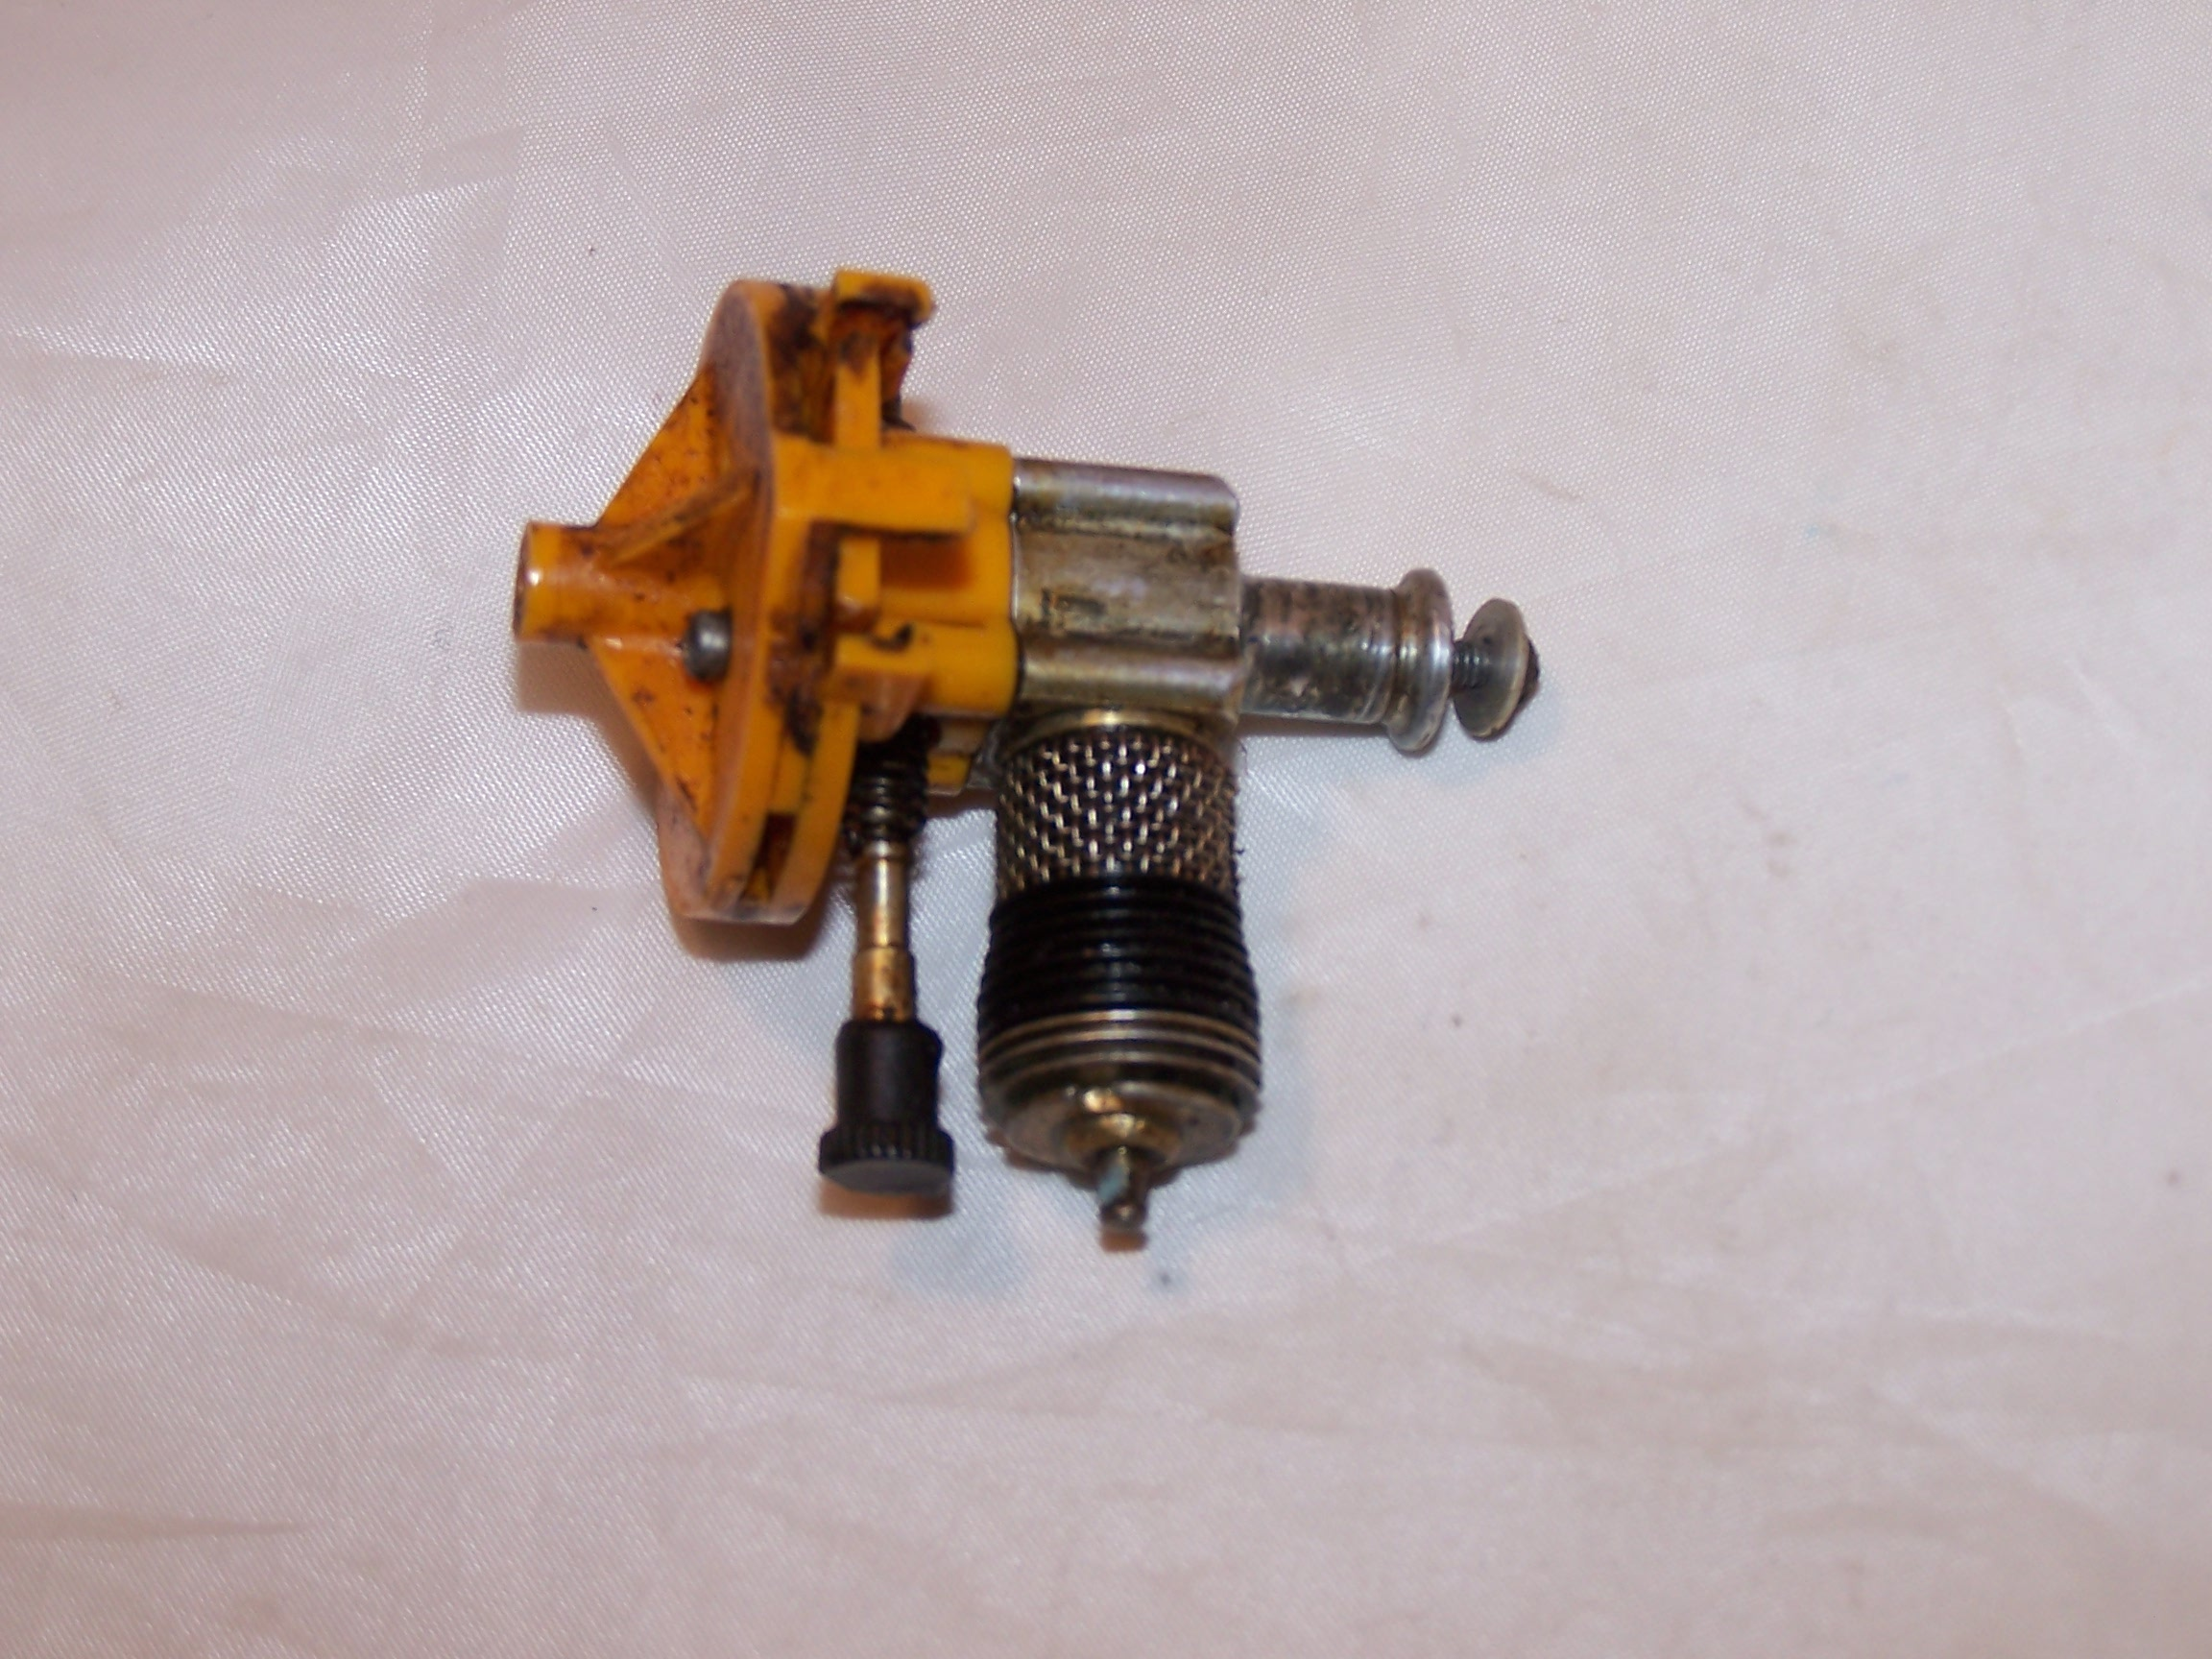 Image 4 of Radio Control RC Airplane Motor, Vintage